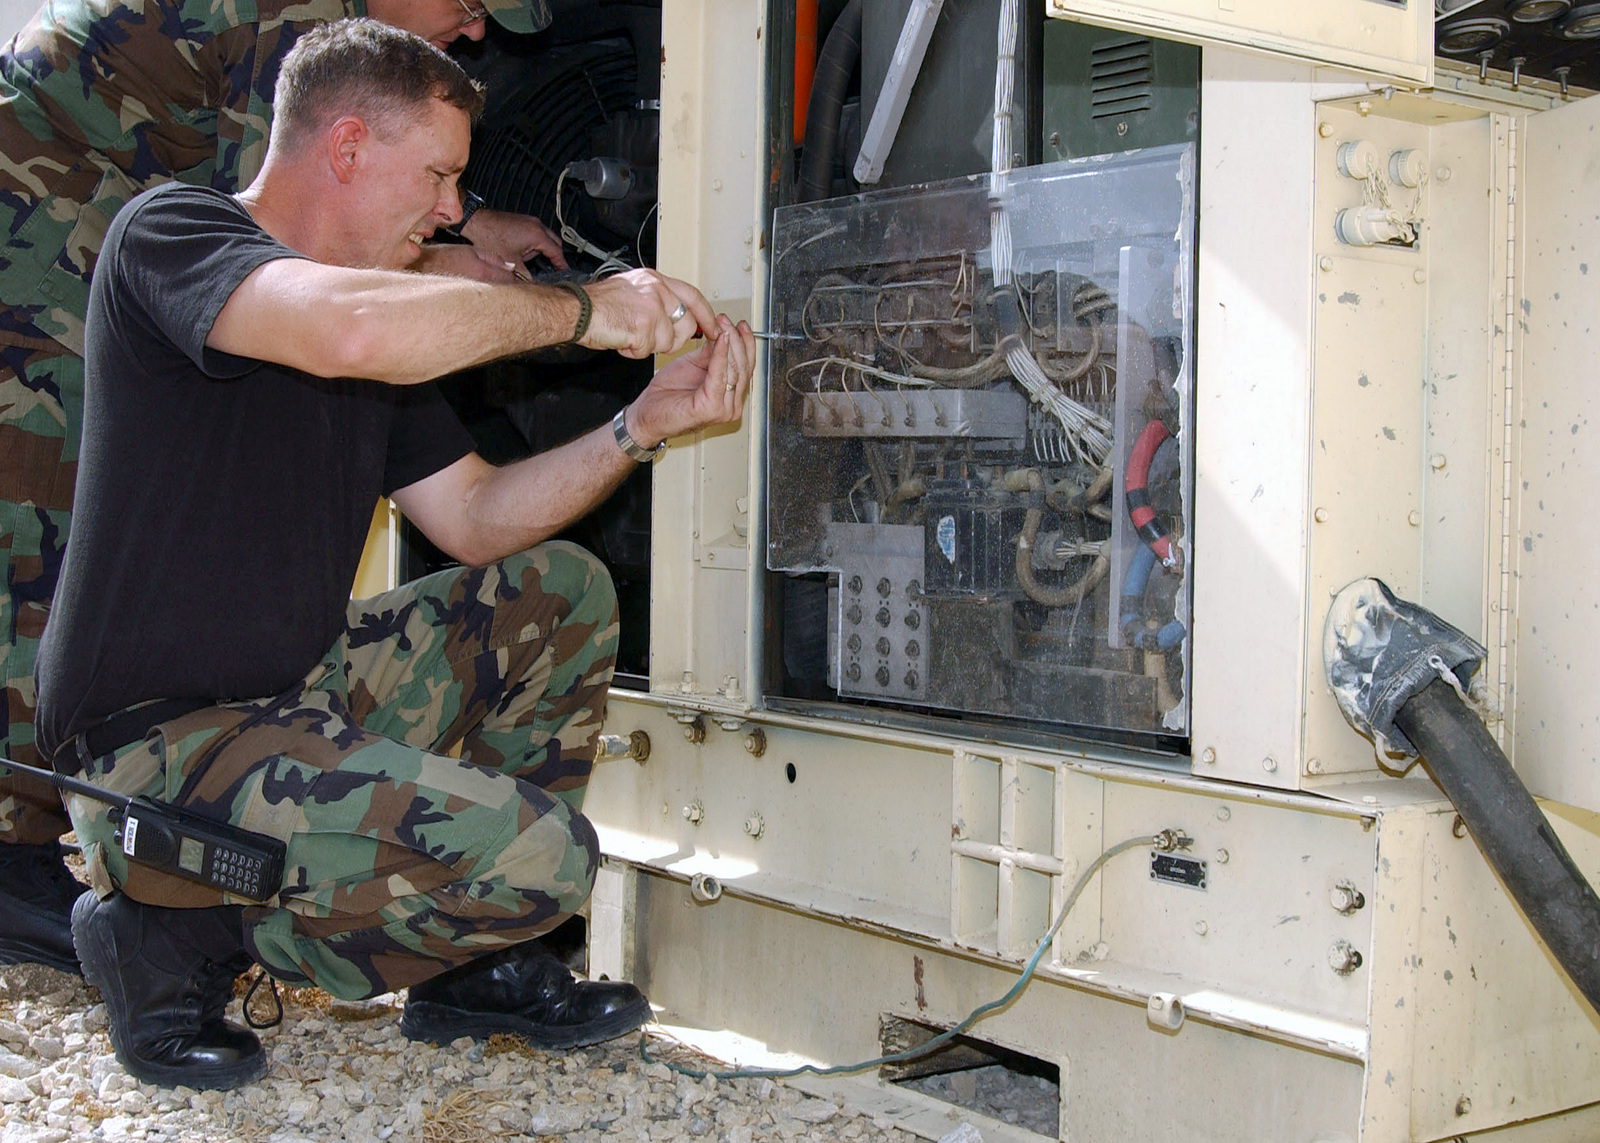 """US Air Force (USAF) Technical Sergeant (TSGT) Michael Harmon, a power production craftsman, works on a generator in the deployed """"power-pro"""" shop at Incirlik Air Base, Turkey in support of Operation NORTHERN WATCH"""